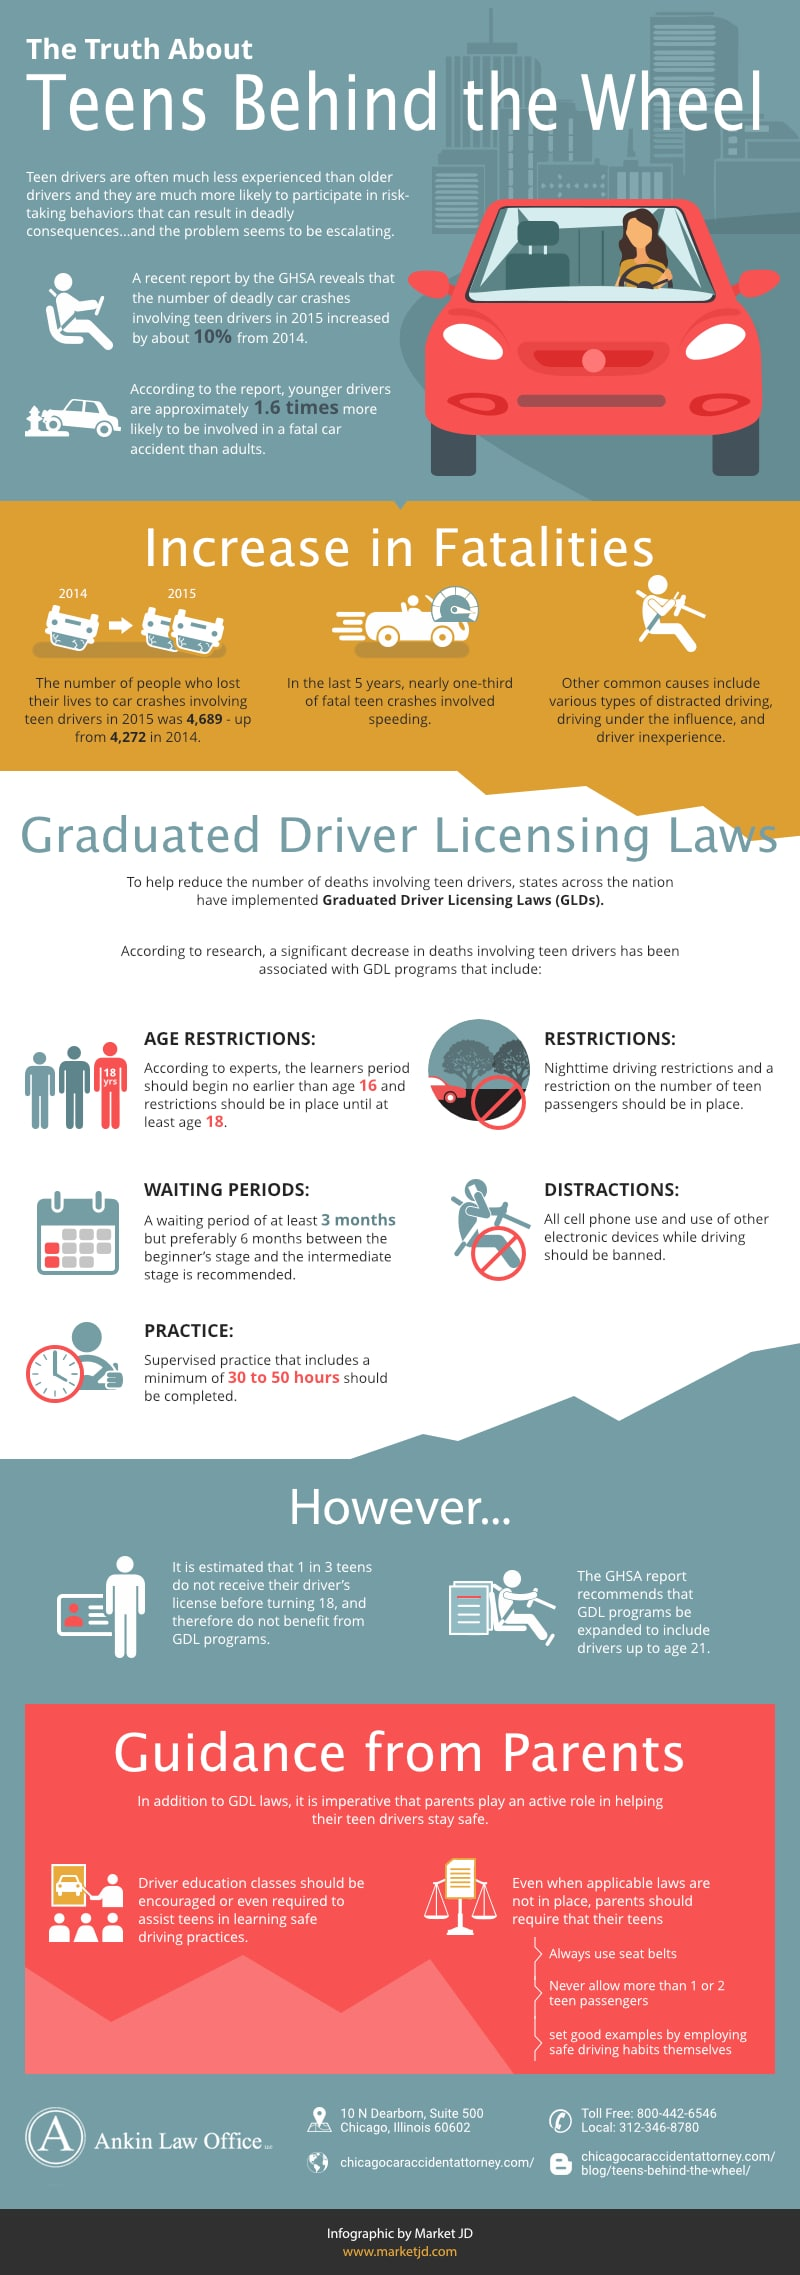 infographic_Teens Behind the Wheel